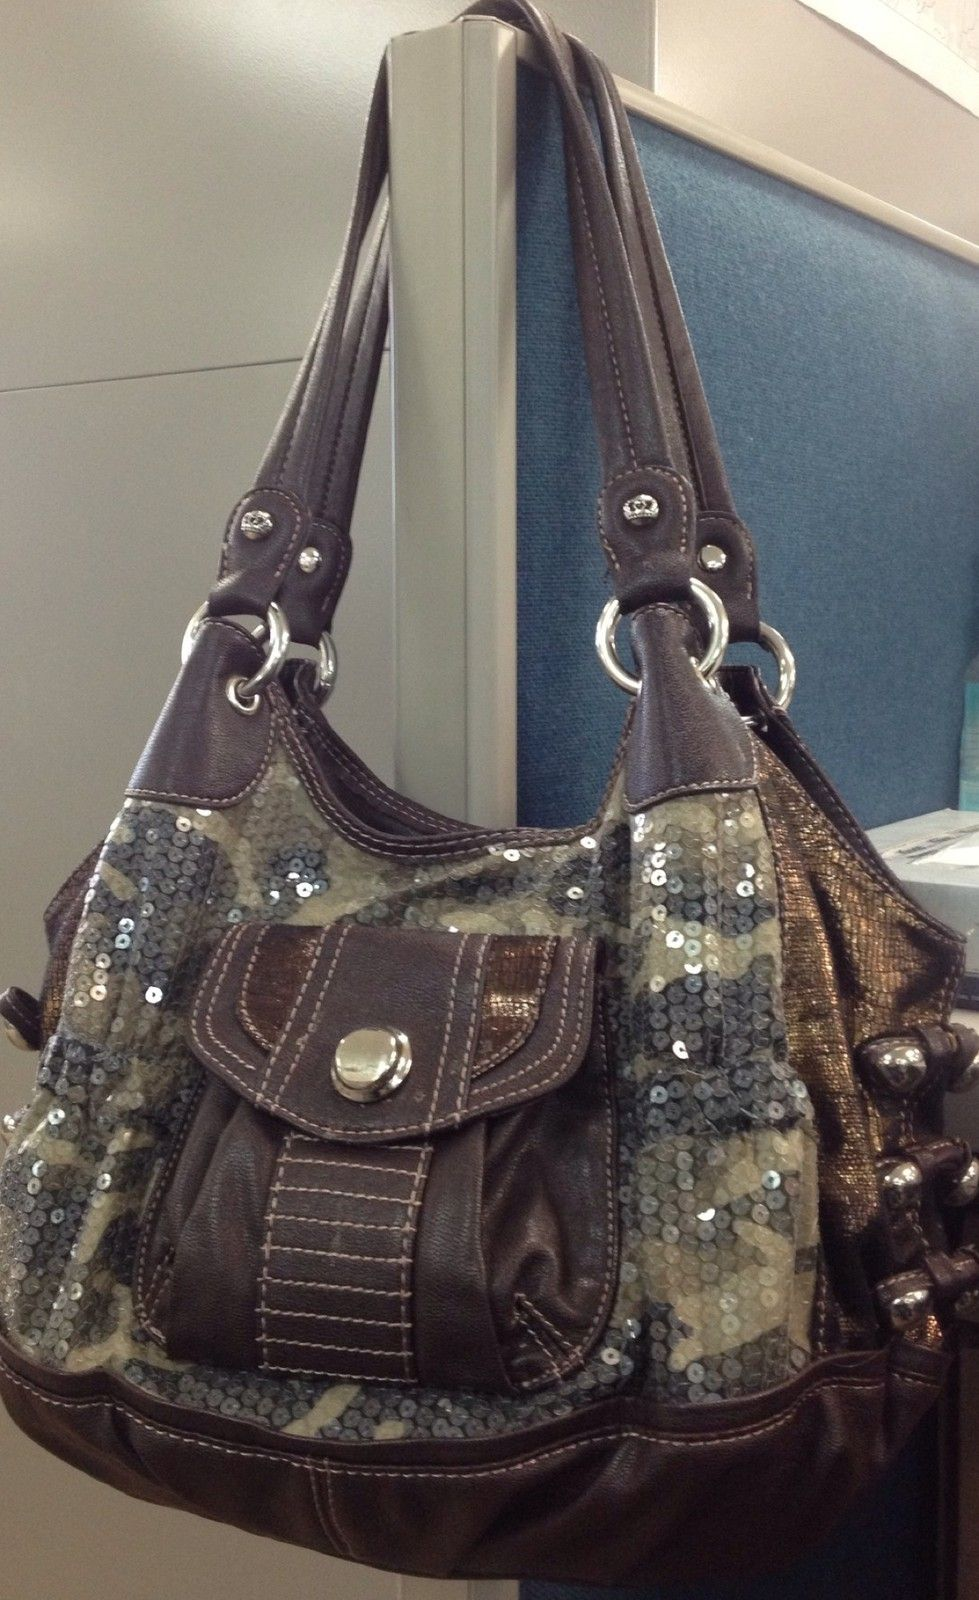 Your Purse Has Camo And Sequins Kathy Van Zeeland Bag